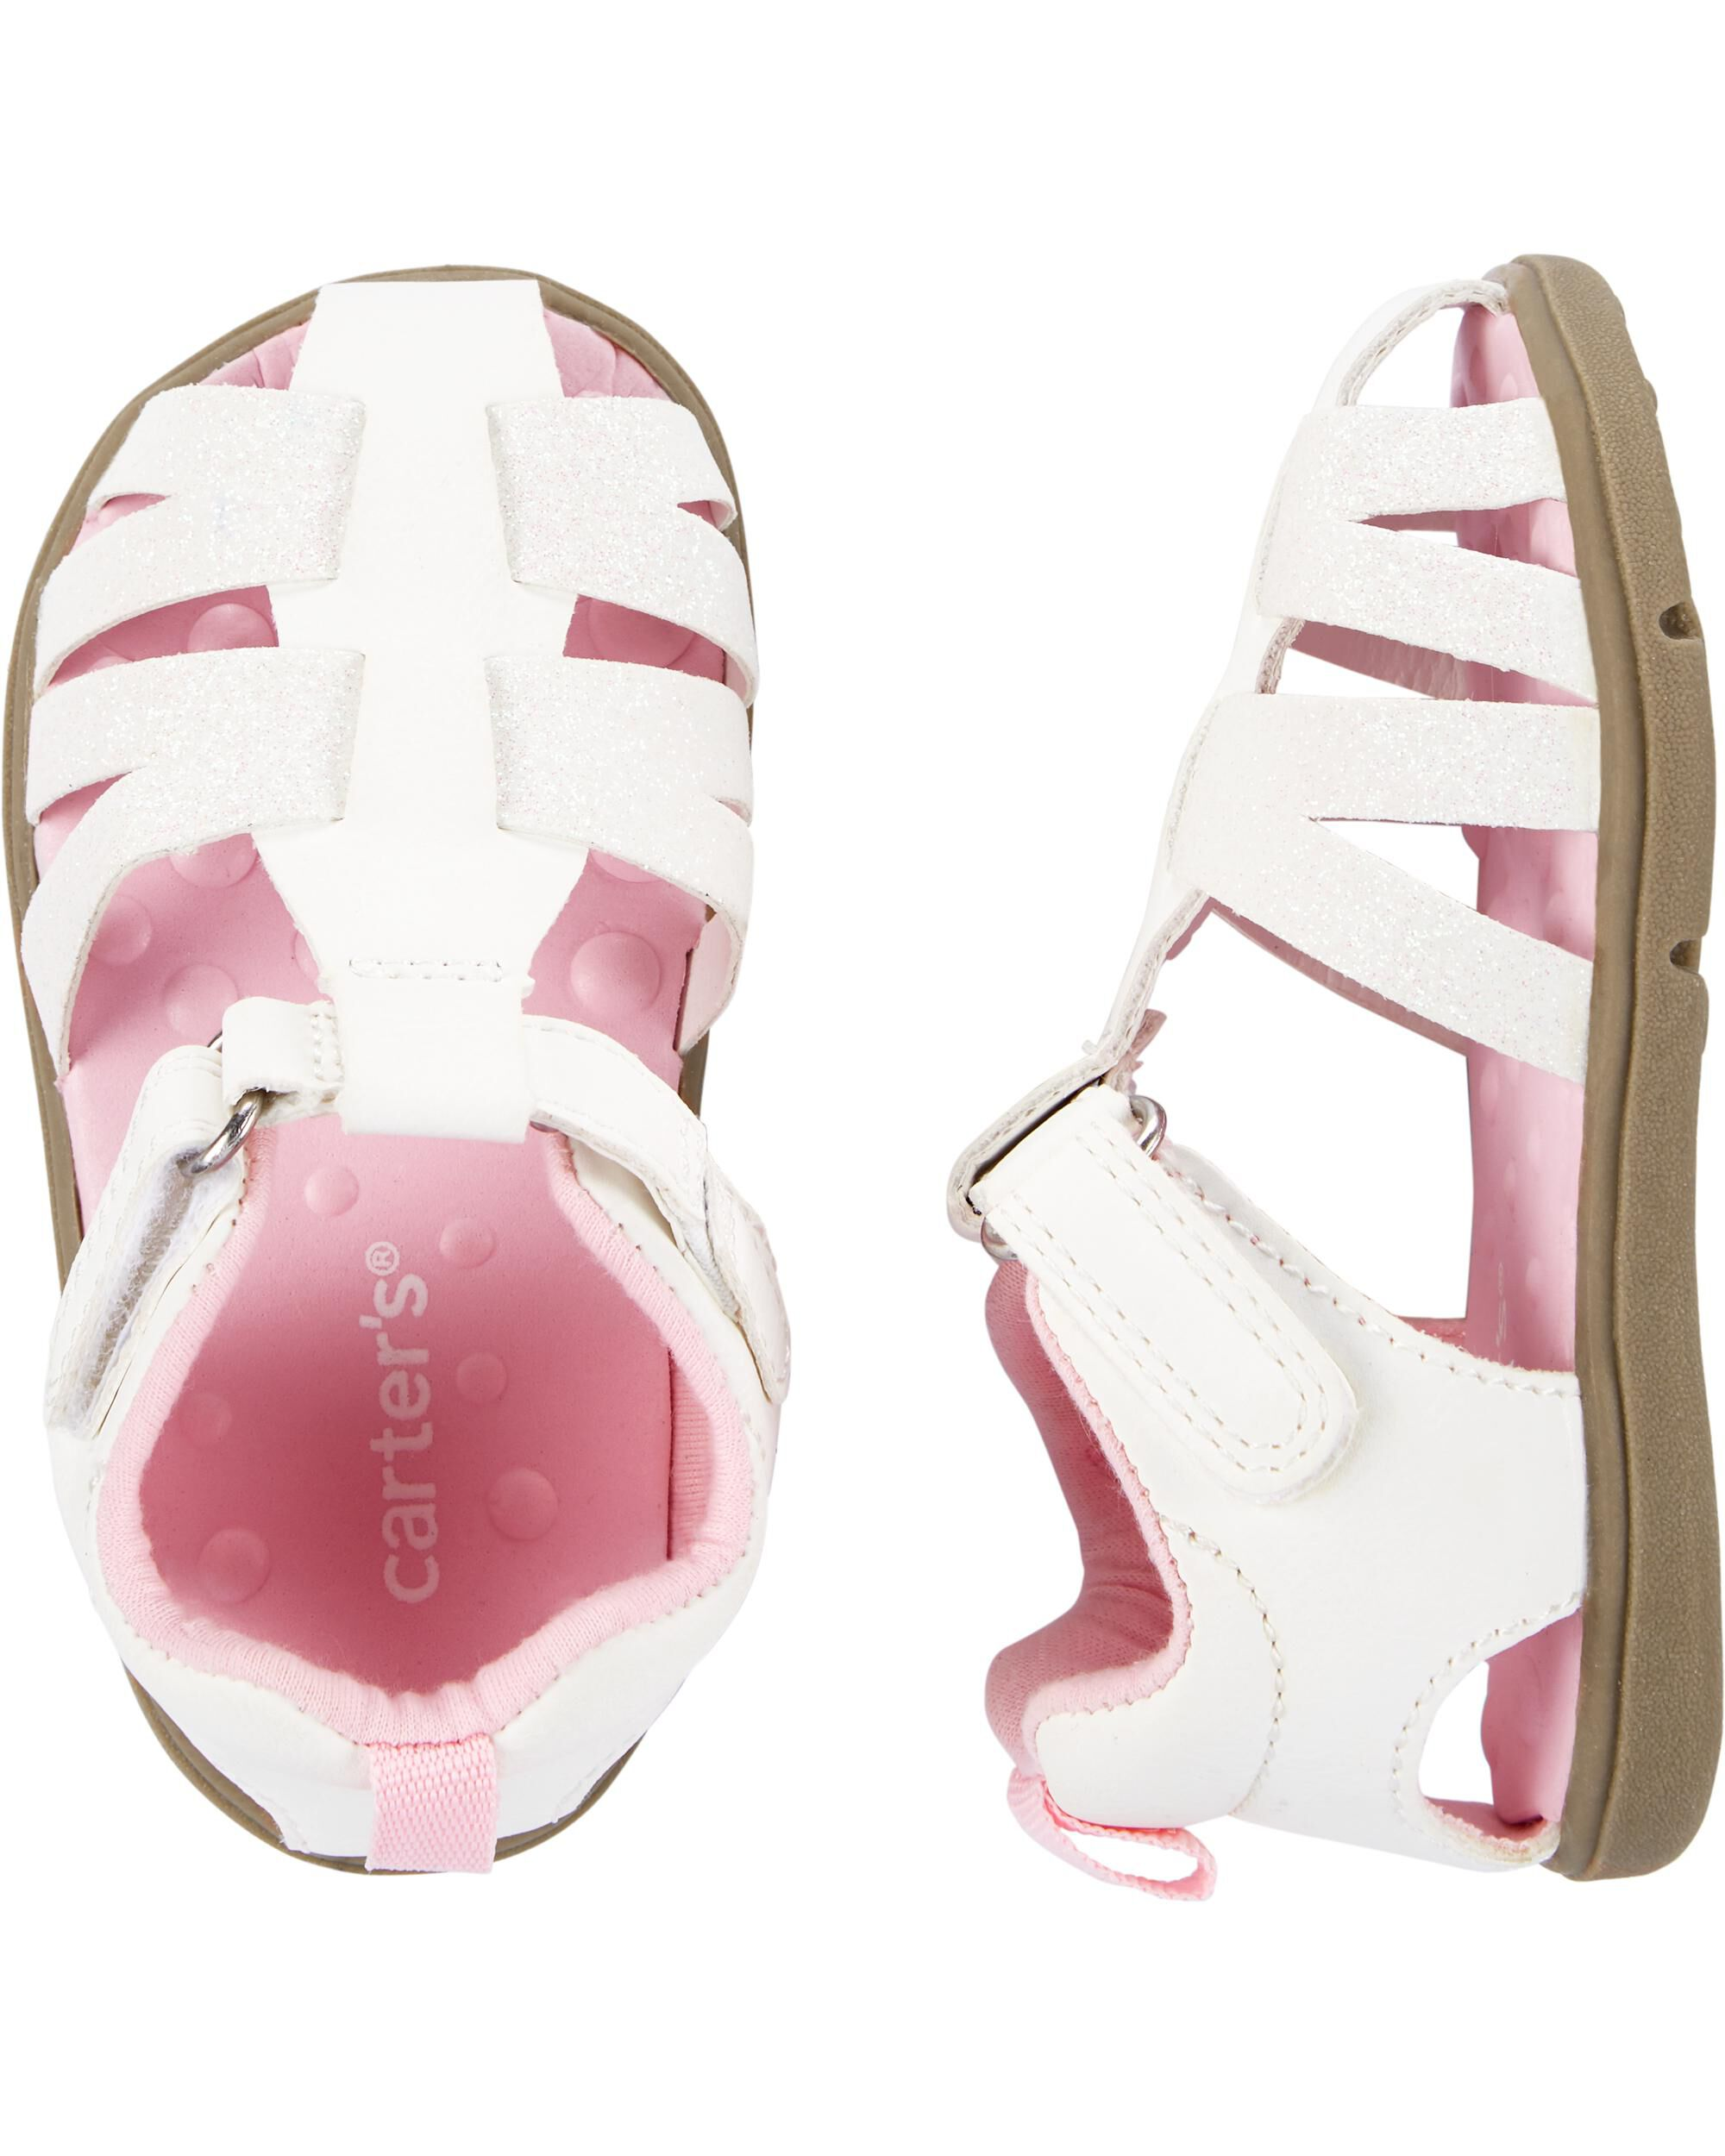 Fisherman Sandal Baby Shoes | carters